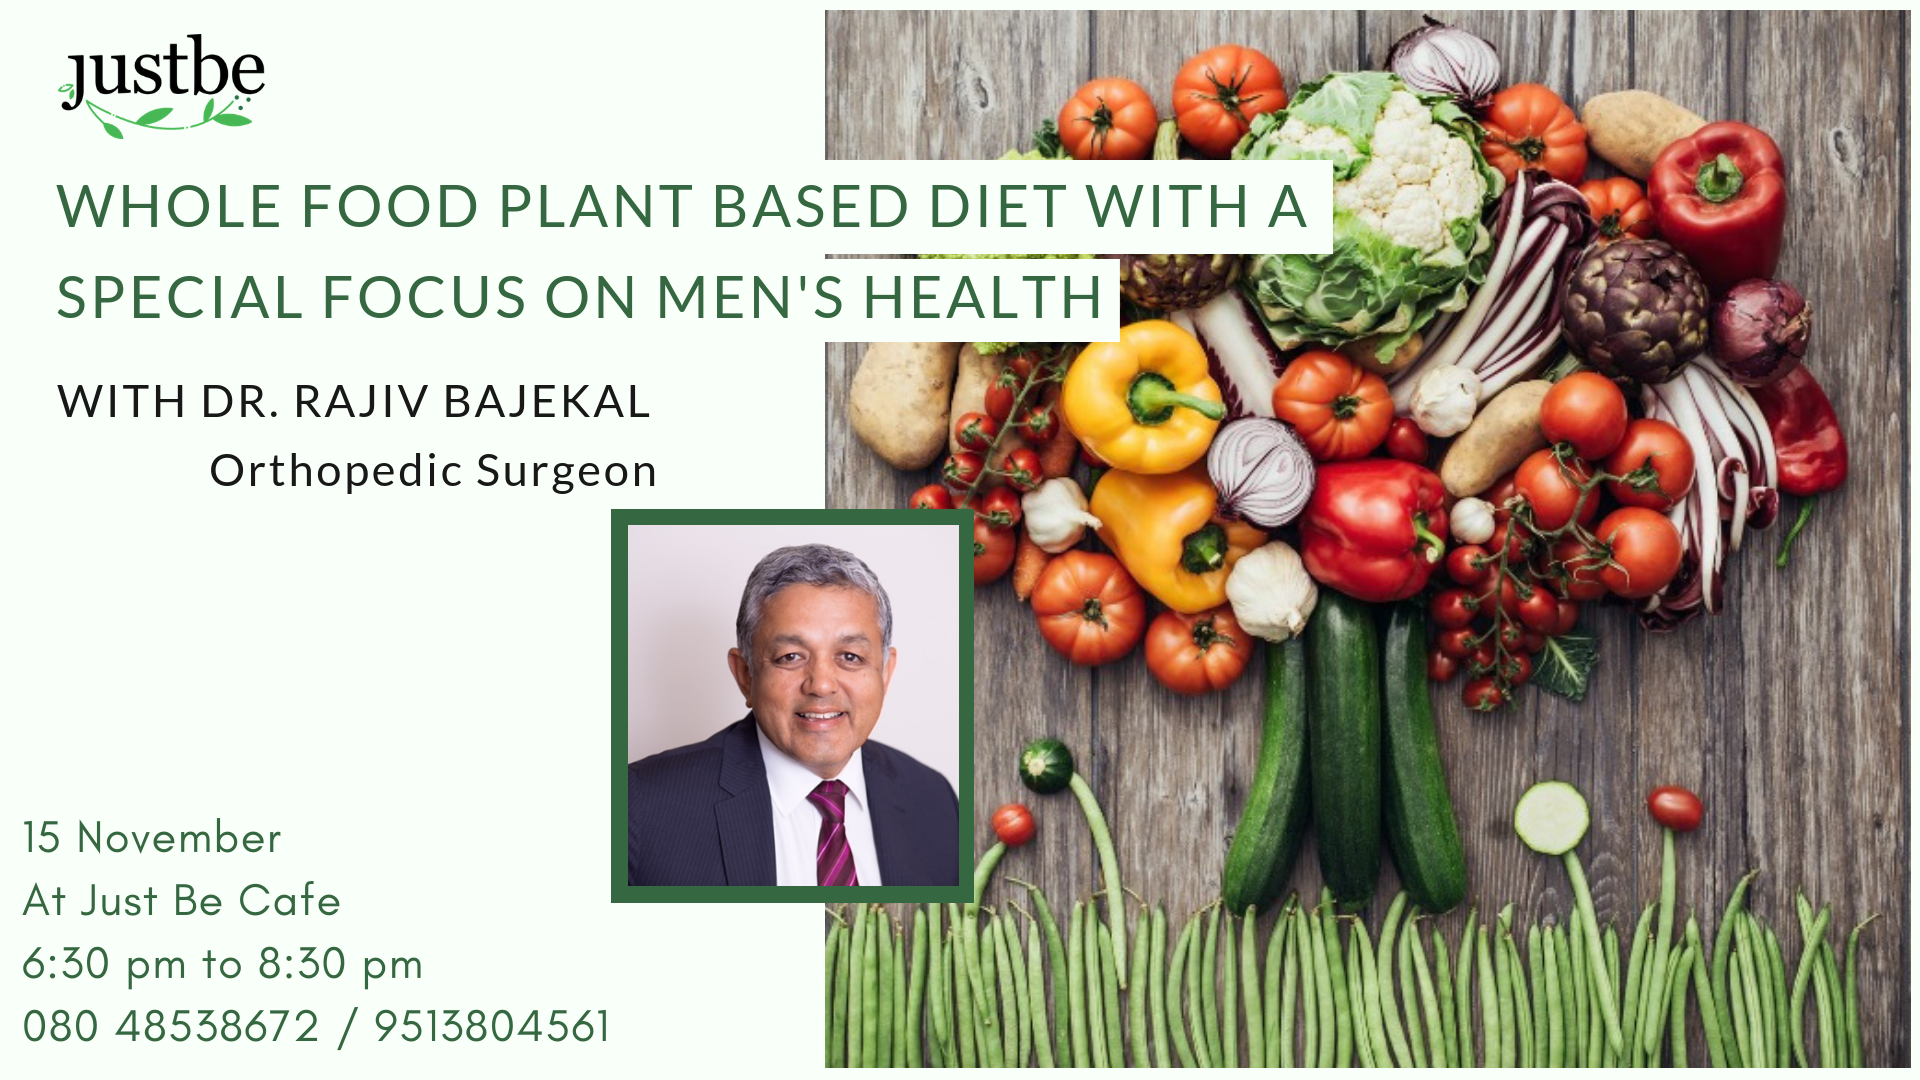 Whole Food Plant Based Diet with a Special Focus on Men's Health - With Dr. Rajiv Bajekal